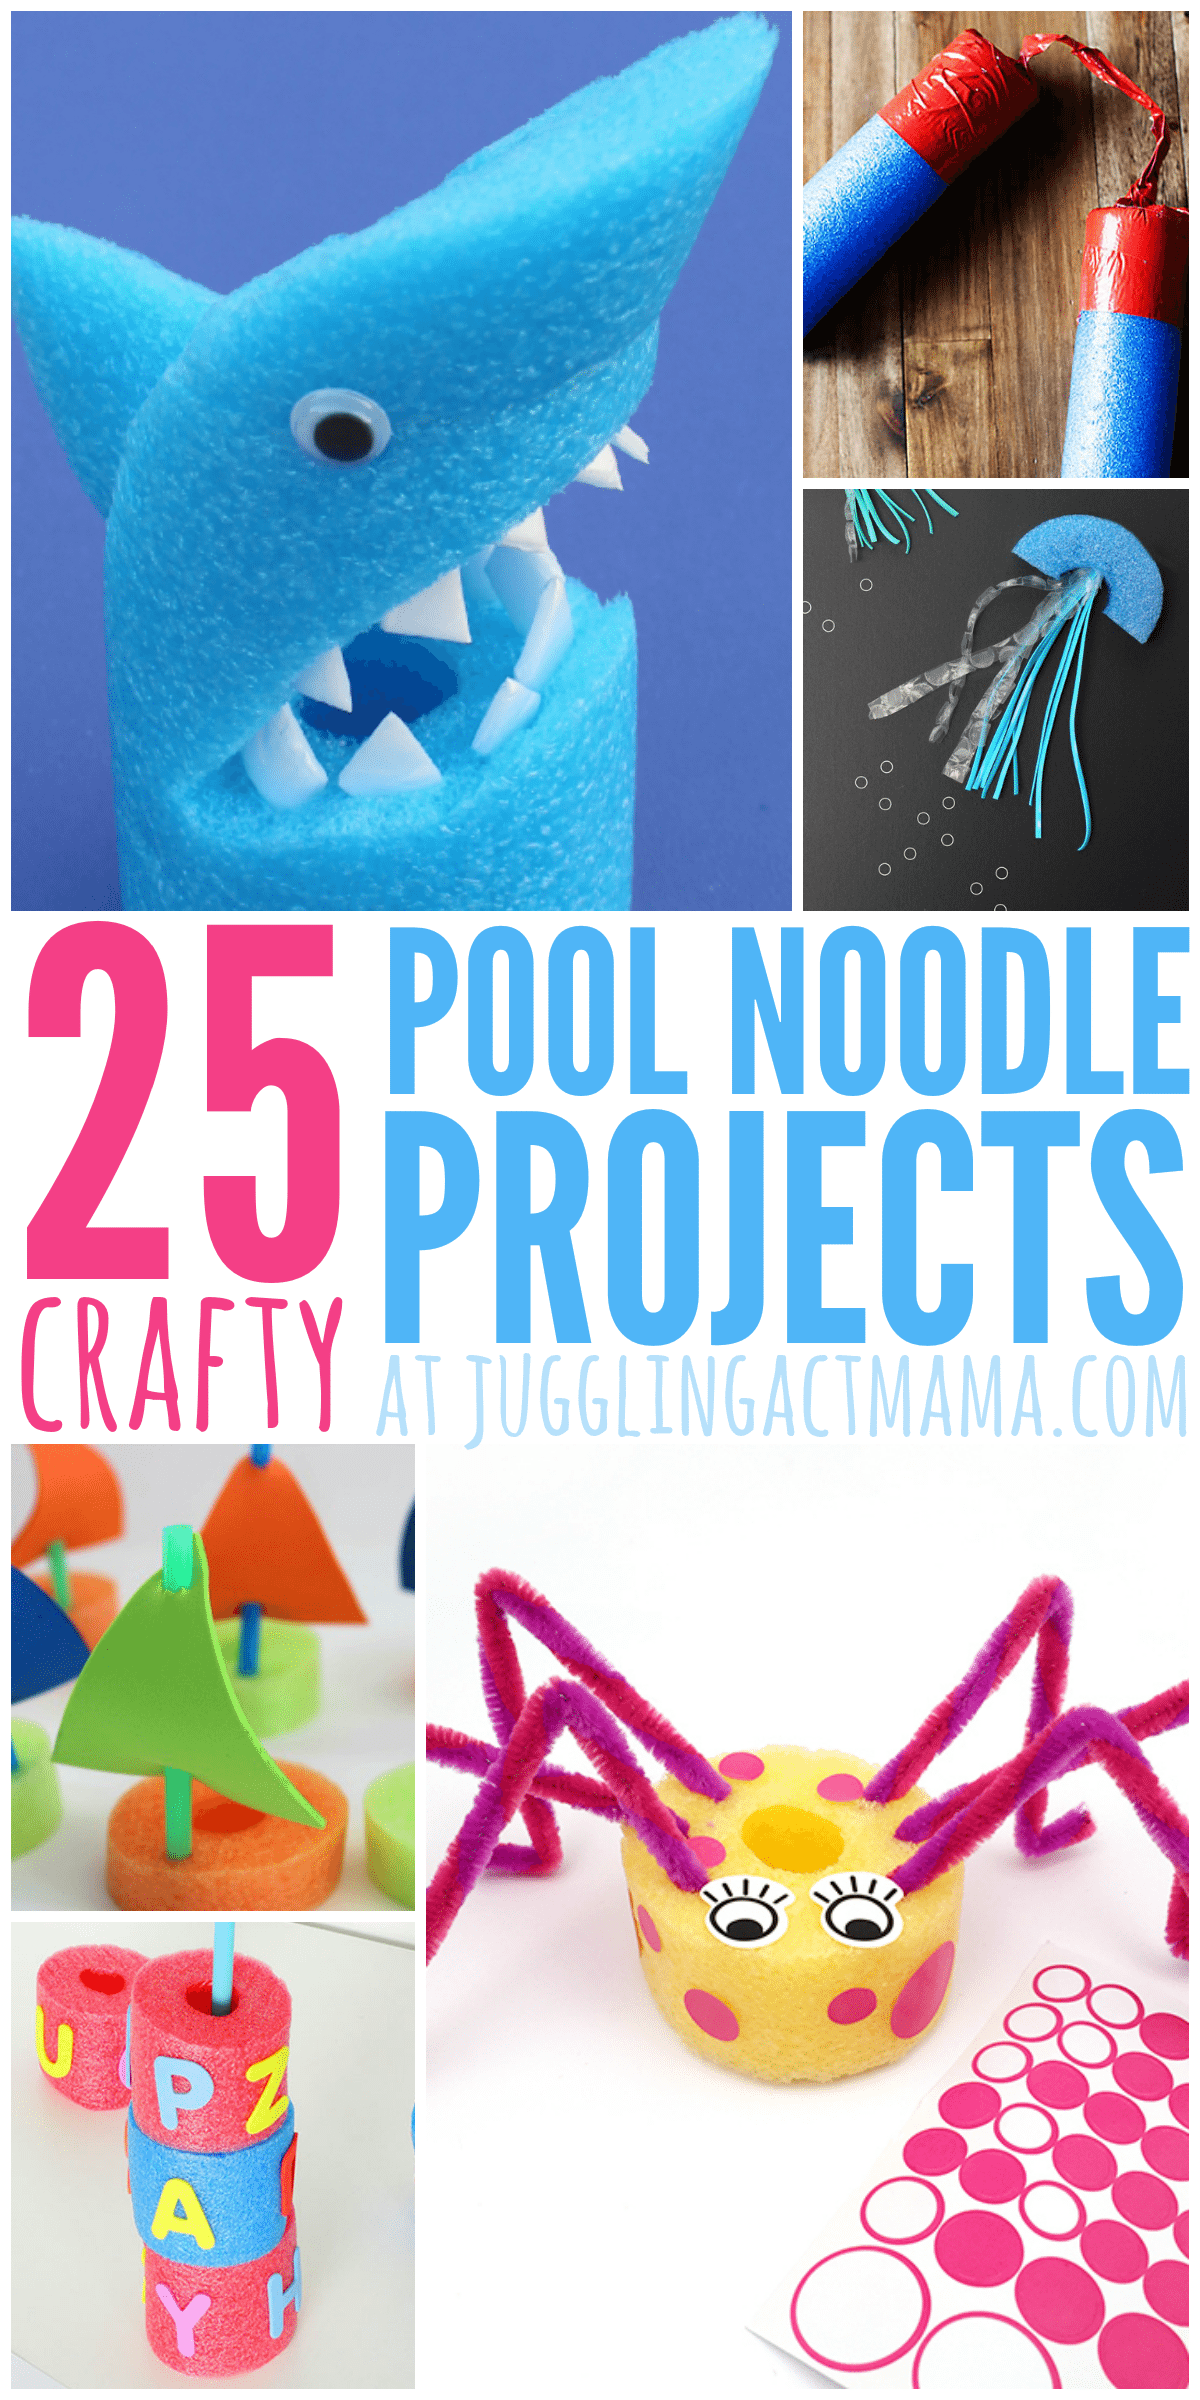 Pool Noodle Projects